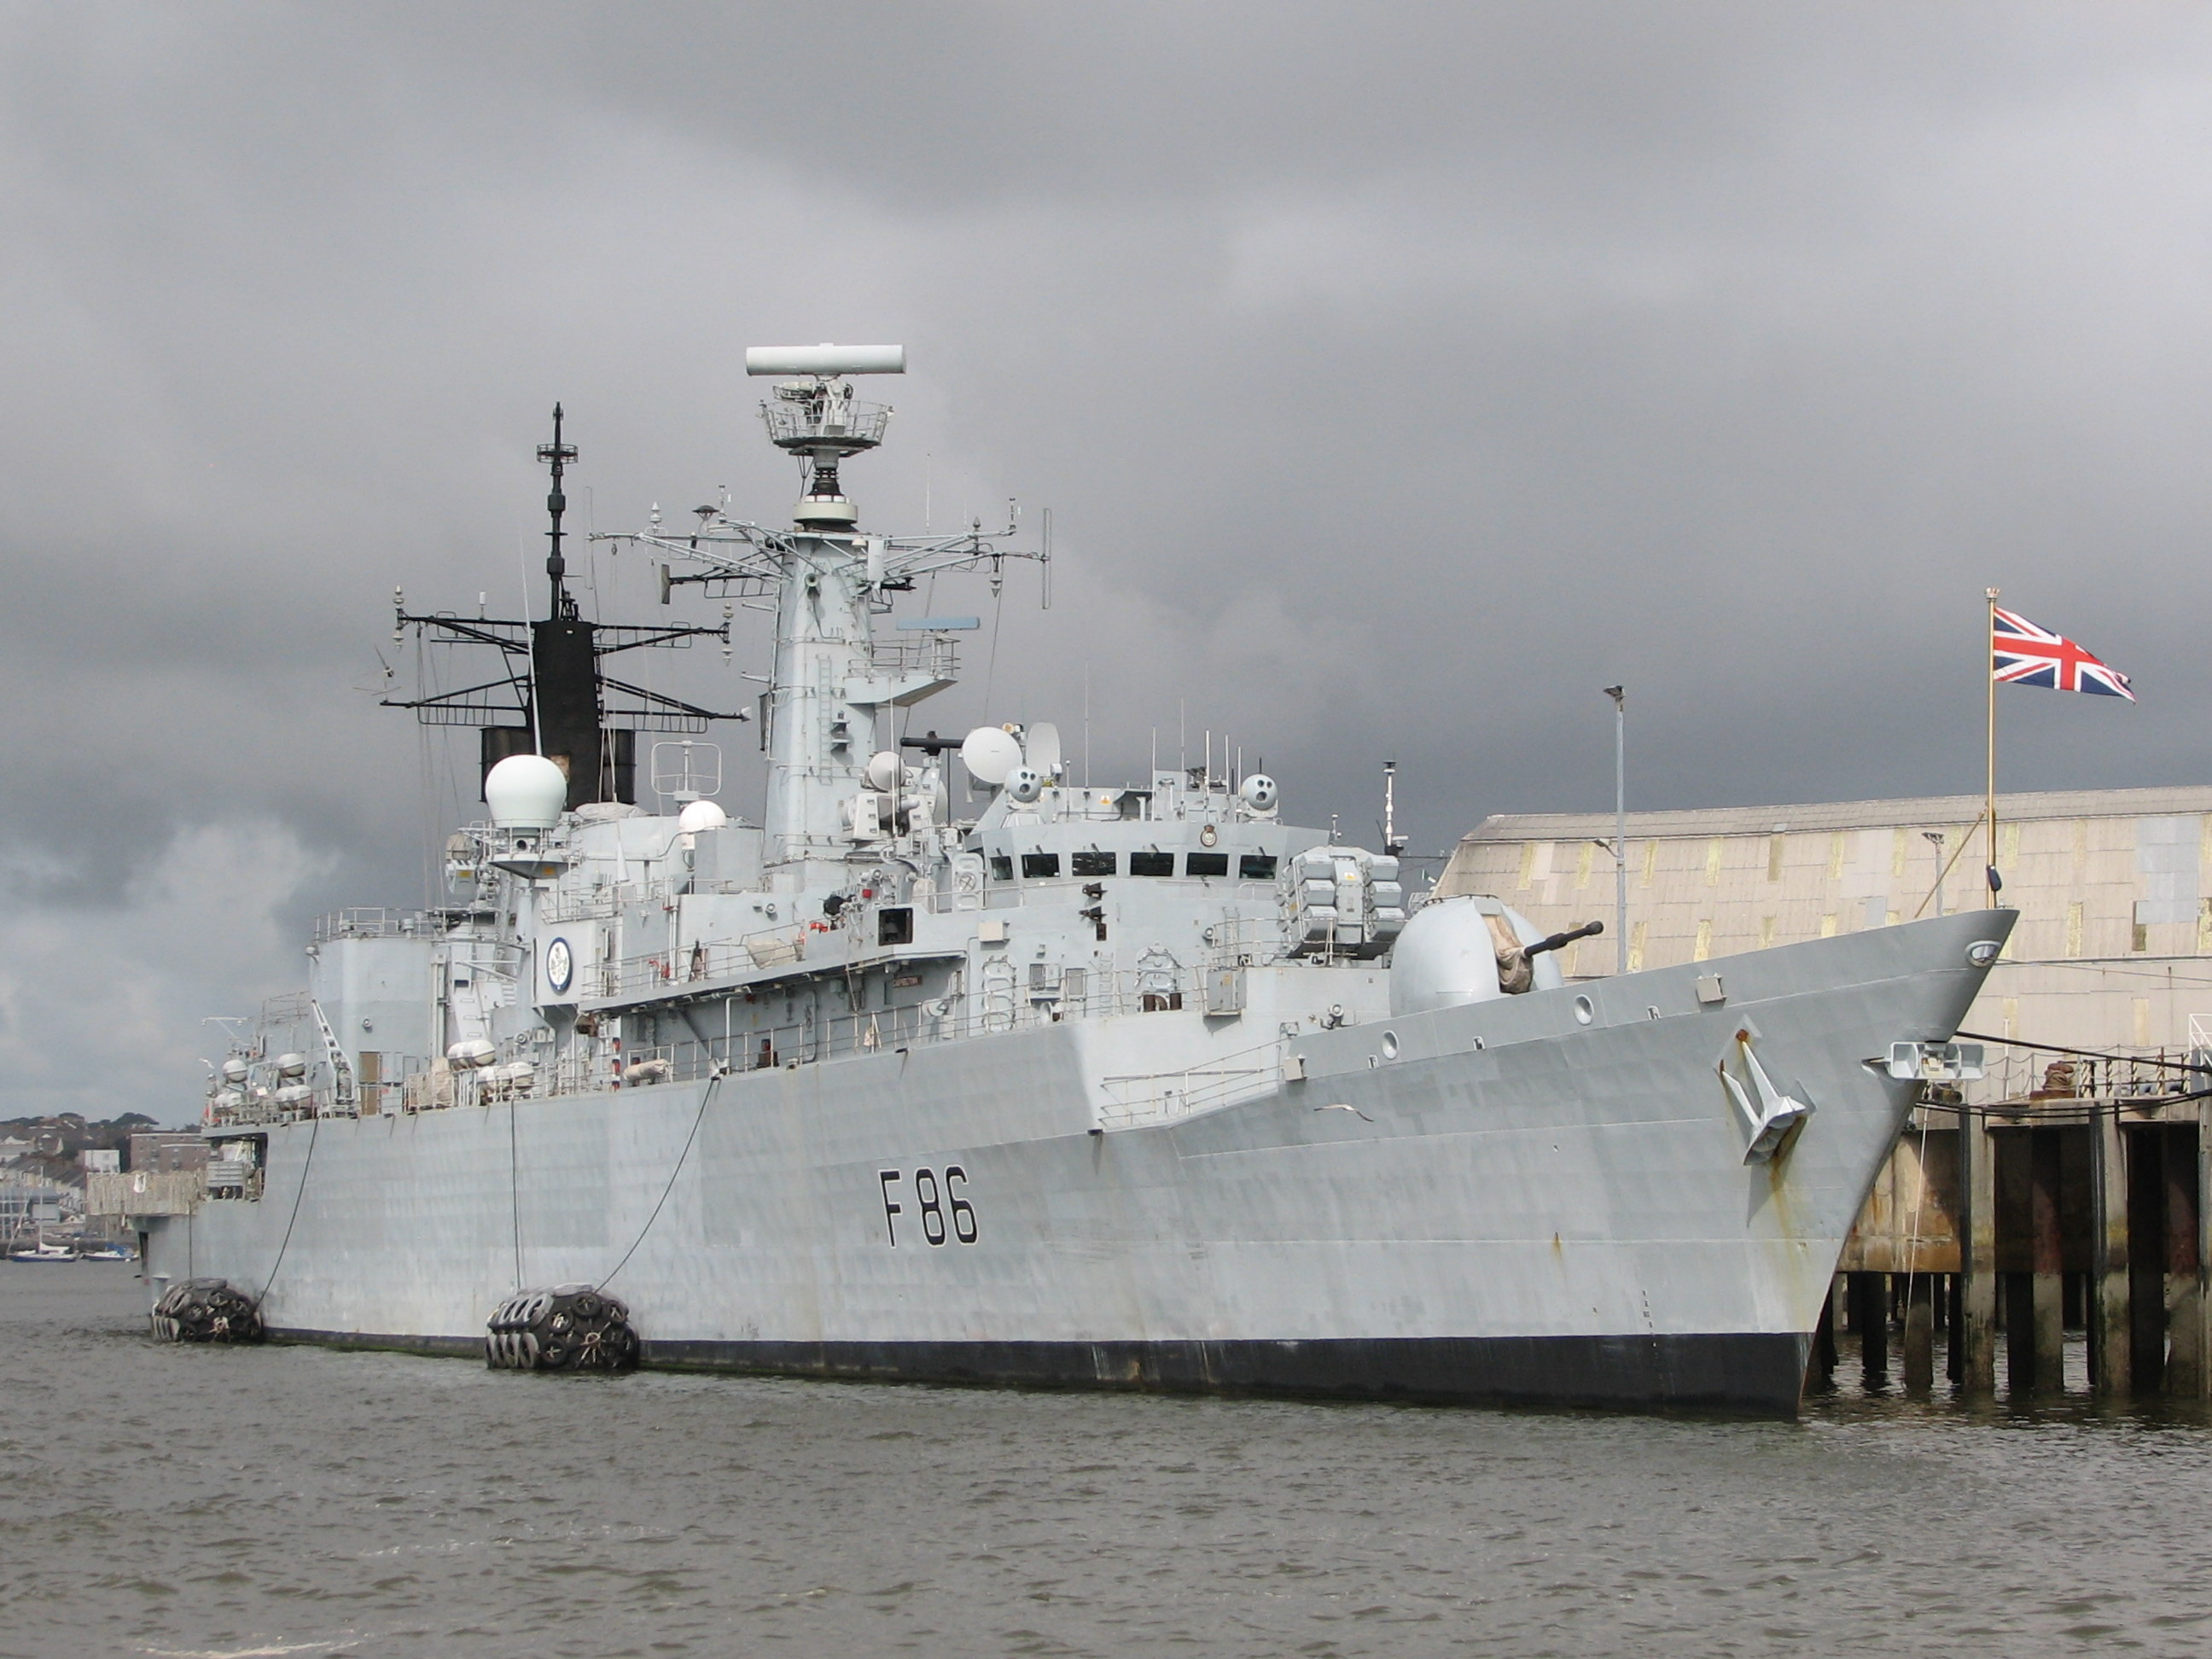 File:HMS Campbeltown (F86) at HMNB Devonport.jpg - Wikipedia, the ...